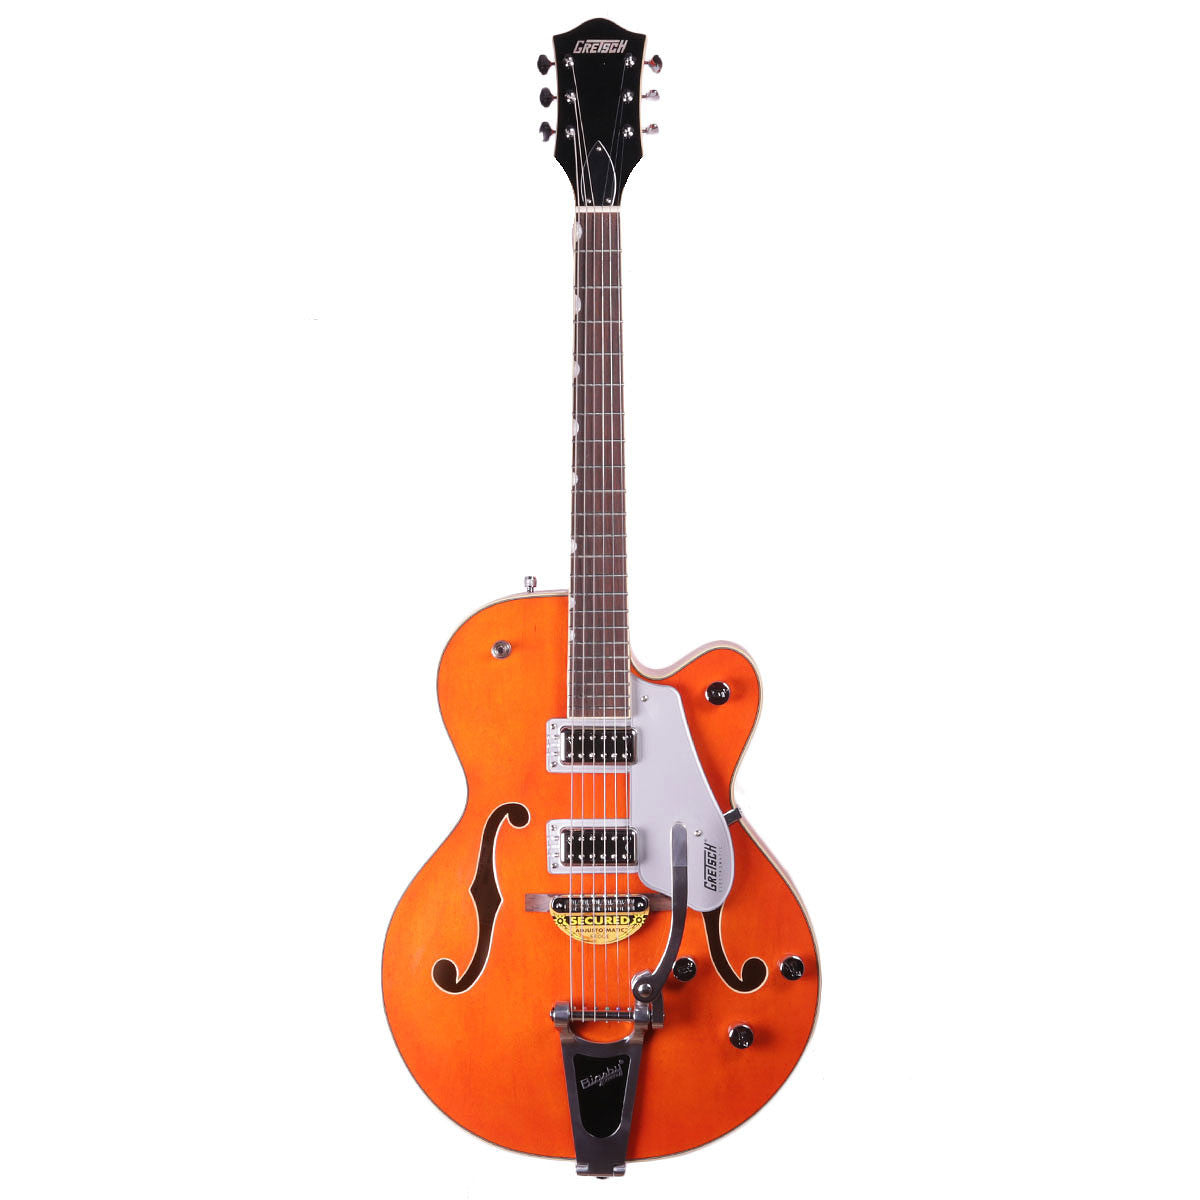 Gretsch G5420T 2016 Electromatic Hollowbody w/Bigsby - Orange - Vintage Guitar Boutique - 2